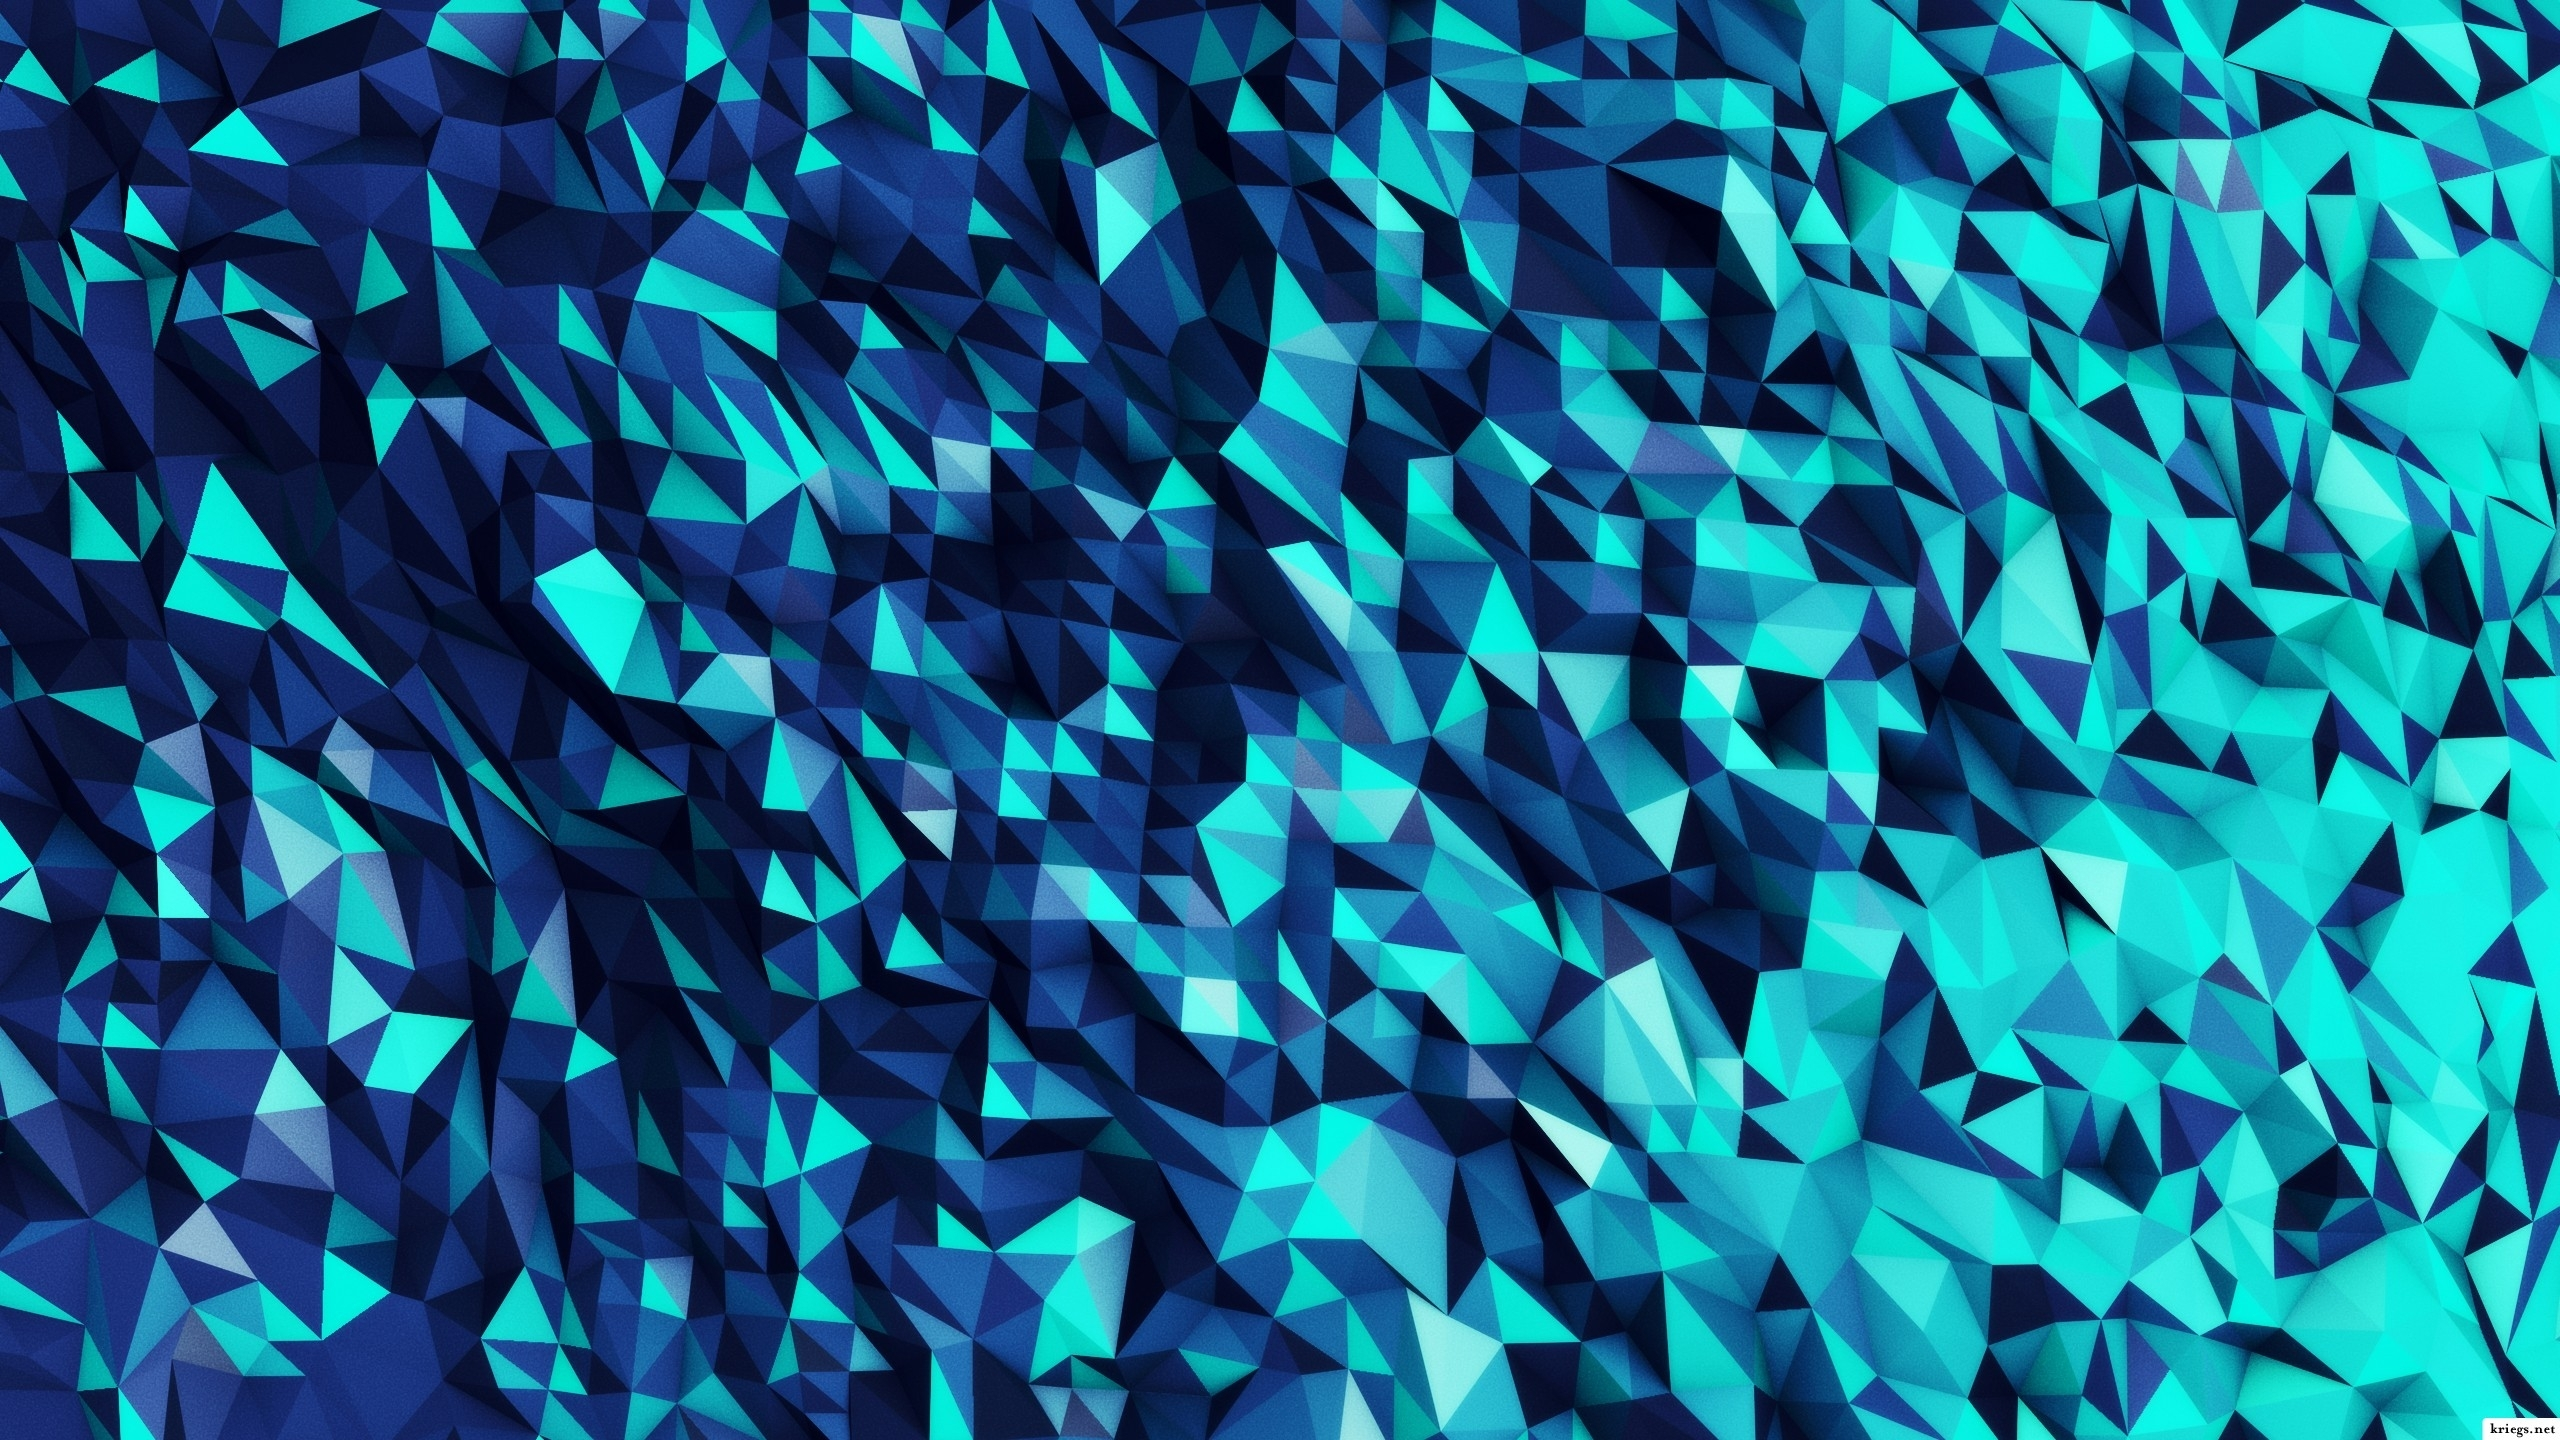 Download Wallpapers, Download 2560x1440 abstract blue shapes